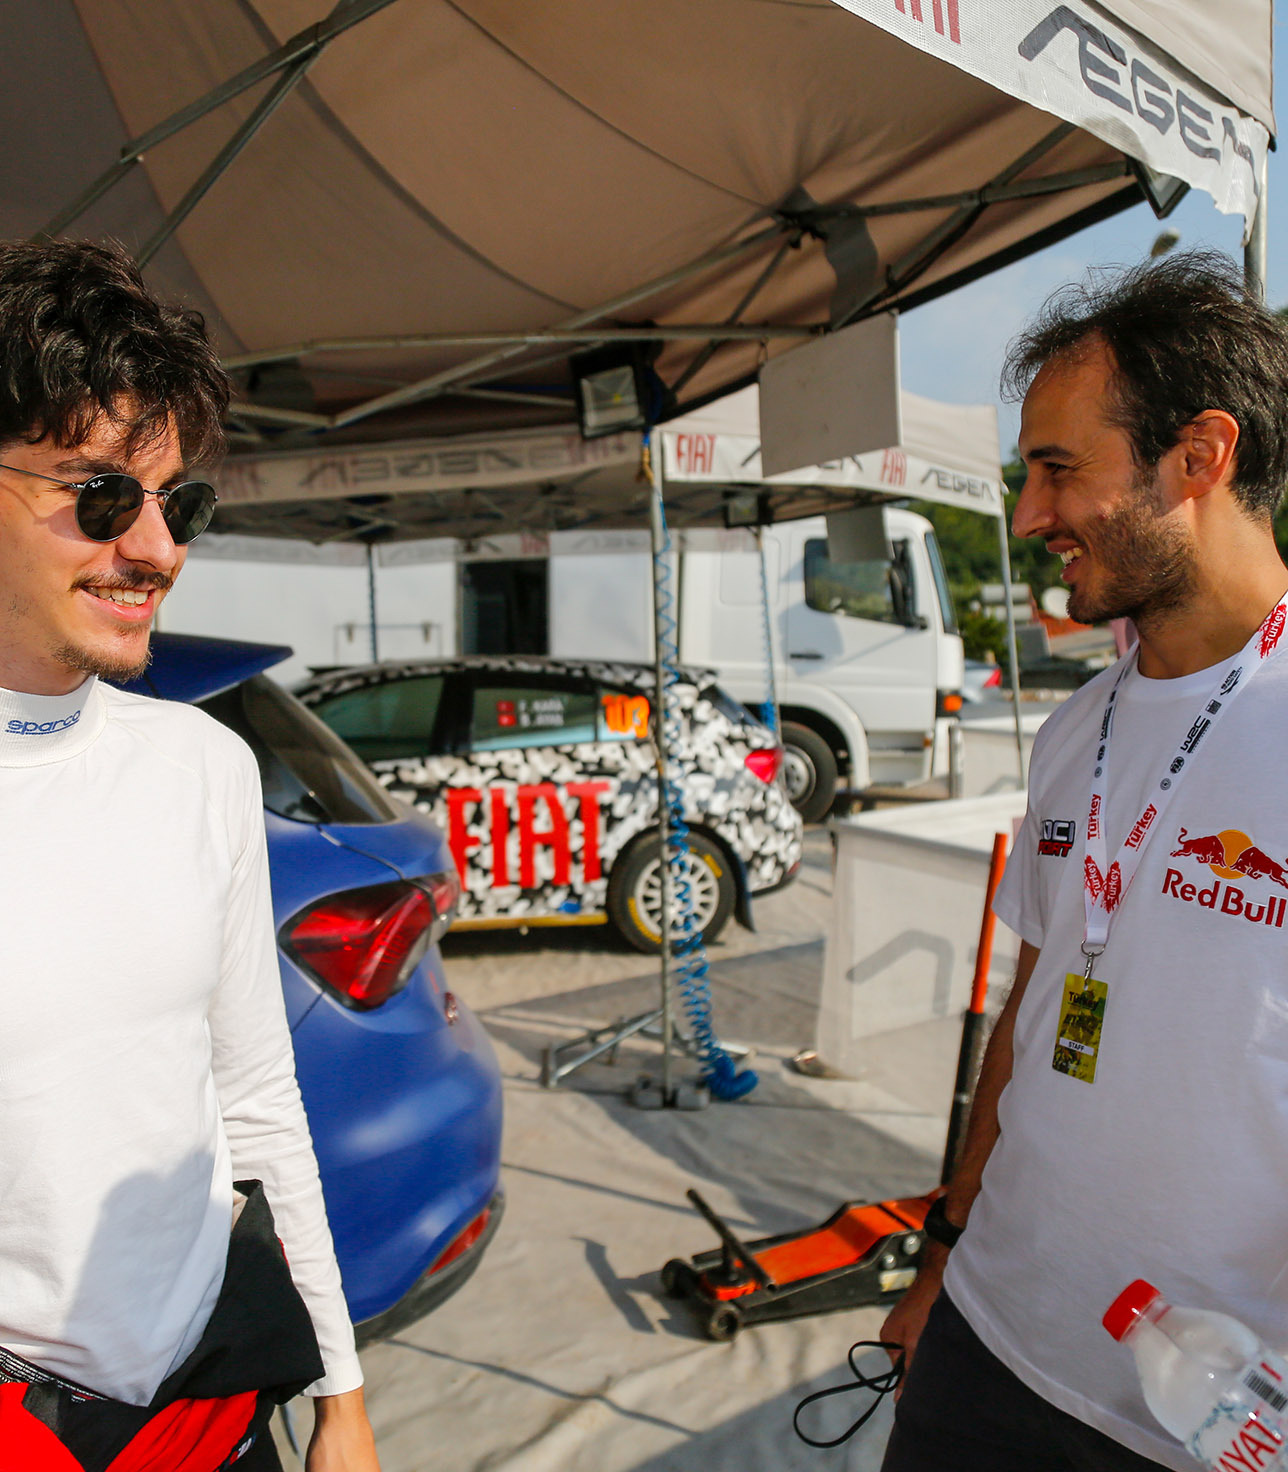 Yağız Avcı & Ali Türkkan preparing for the rally race